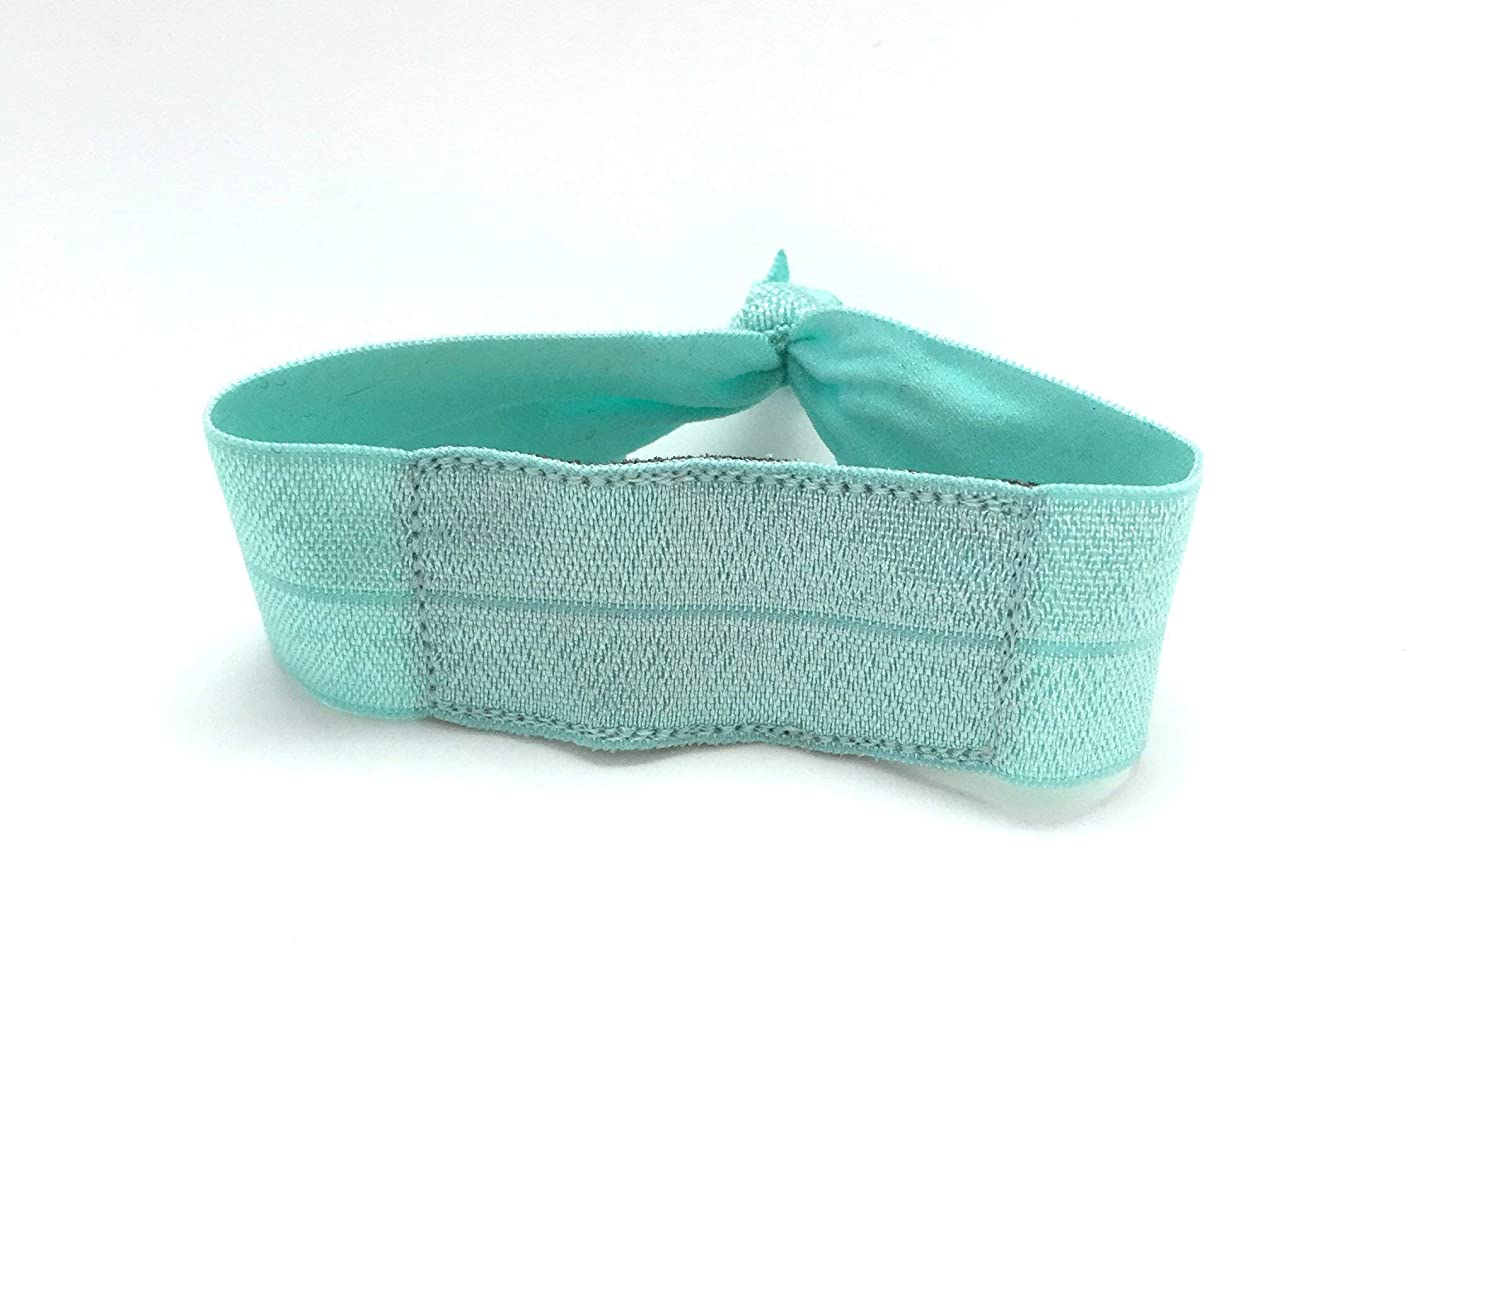 Knotted Aqua Wrist or Ankle Band for Fitbit Flex / Flex 2 / Alta